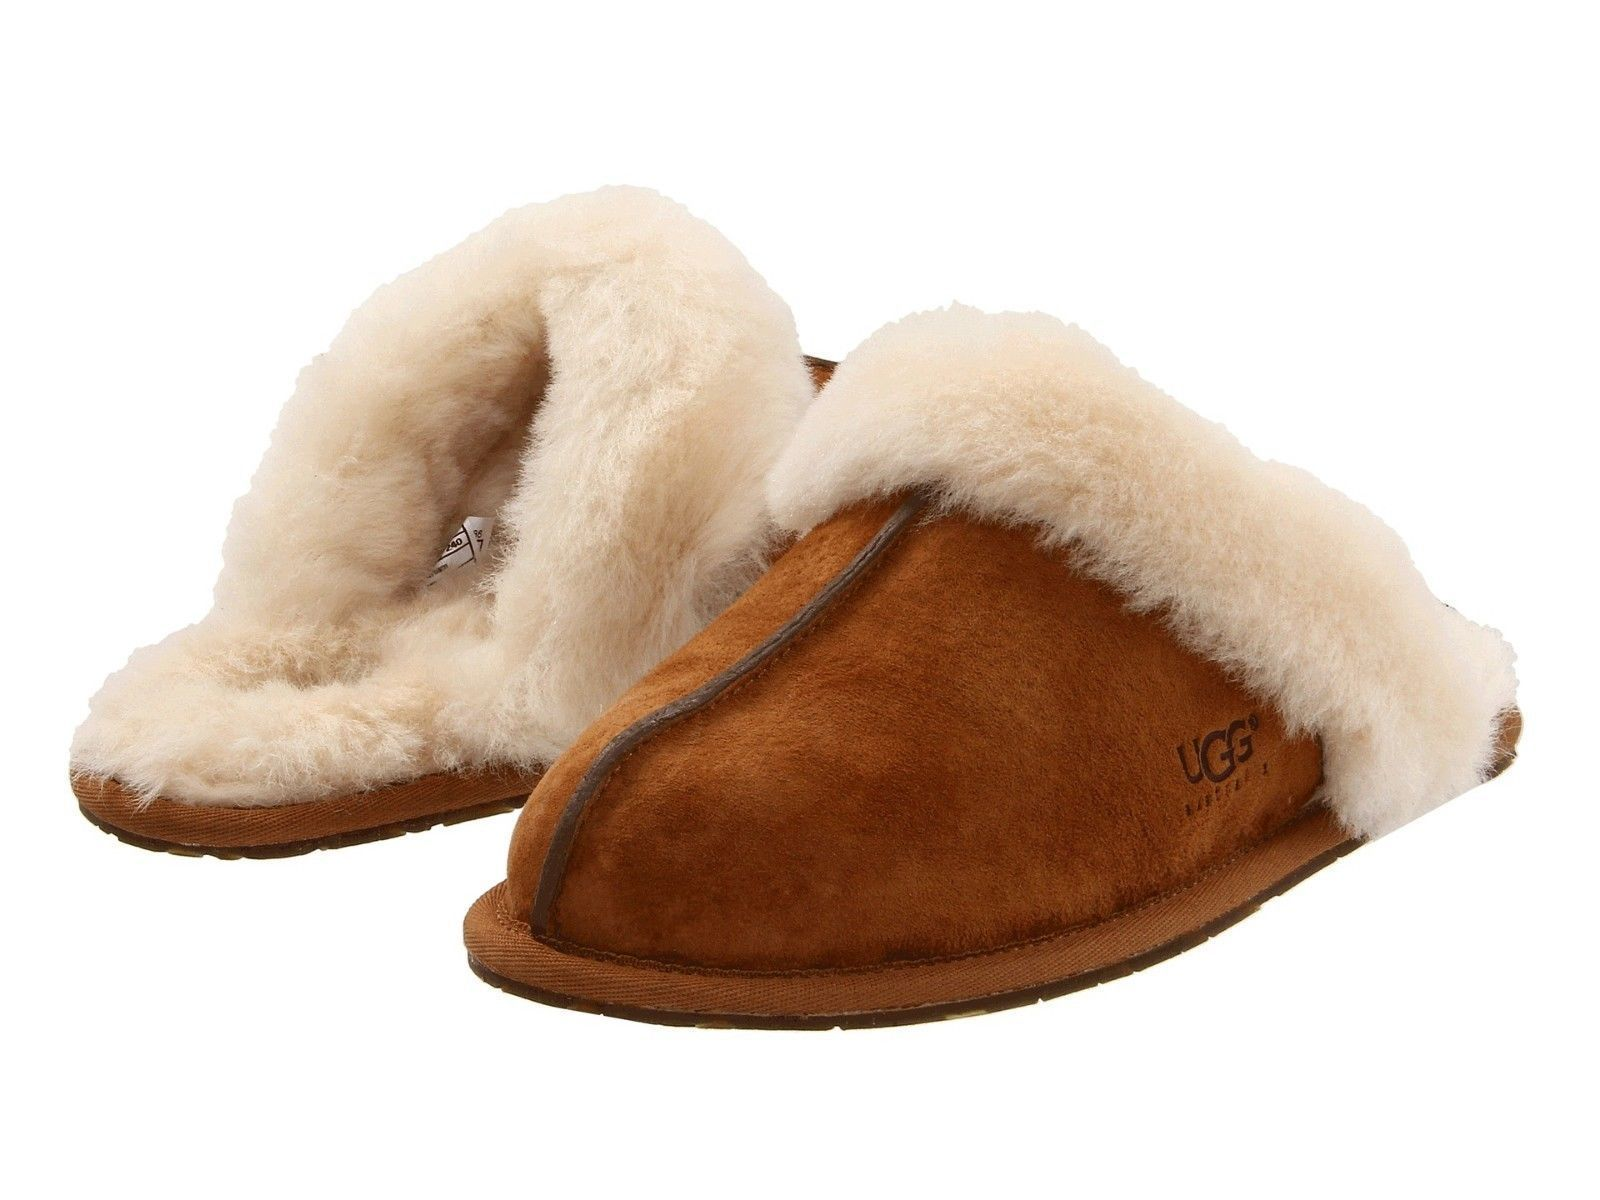 7eaedfbf825 Details about Women's Shoes UGG Scuffette II Slippers 5661 Chestnut ...